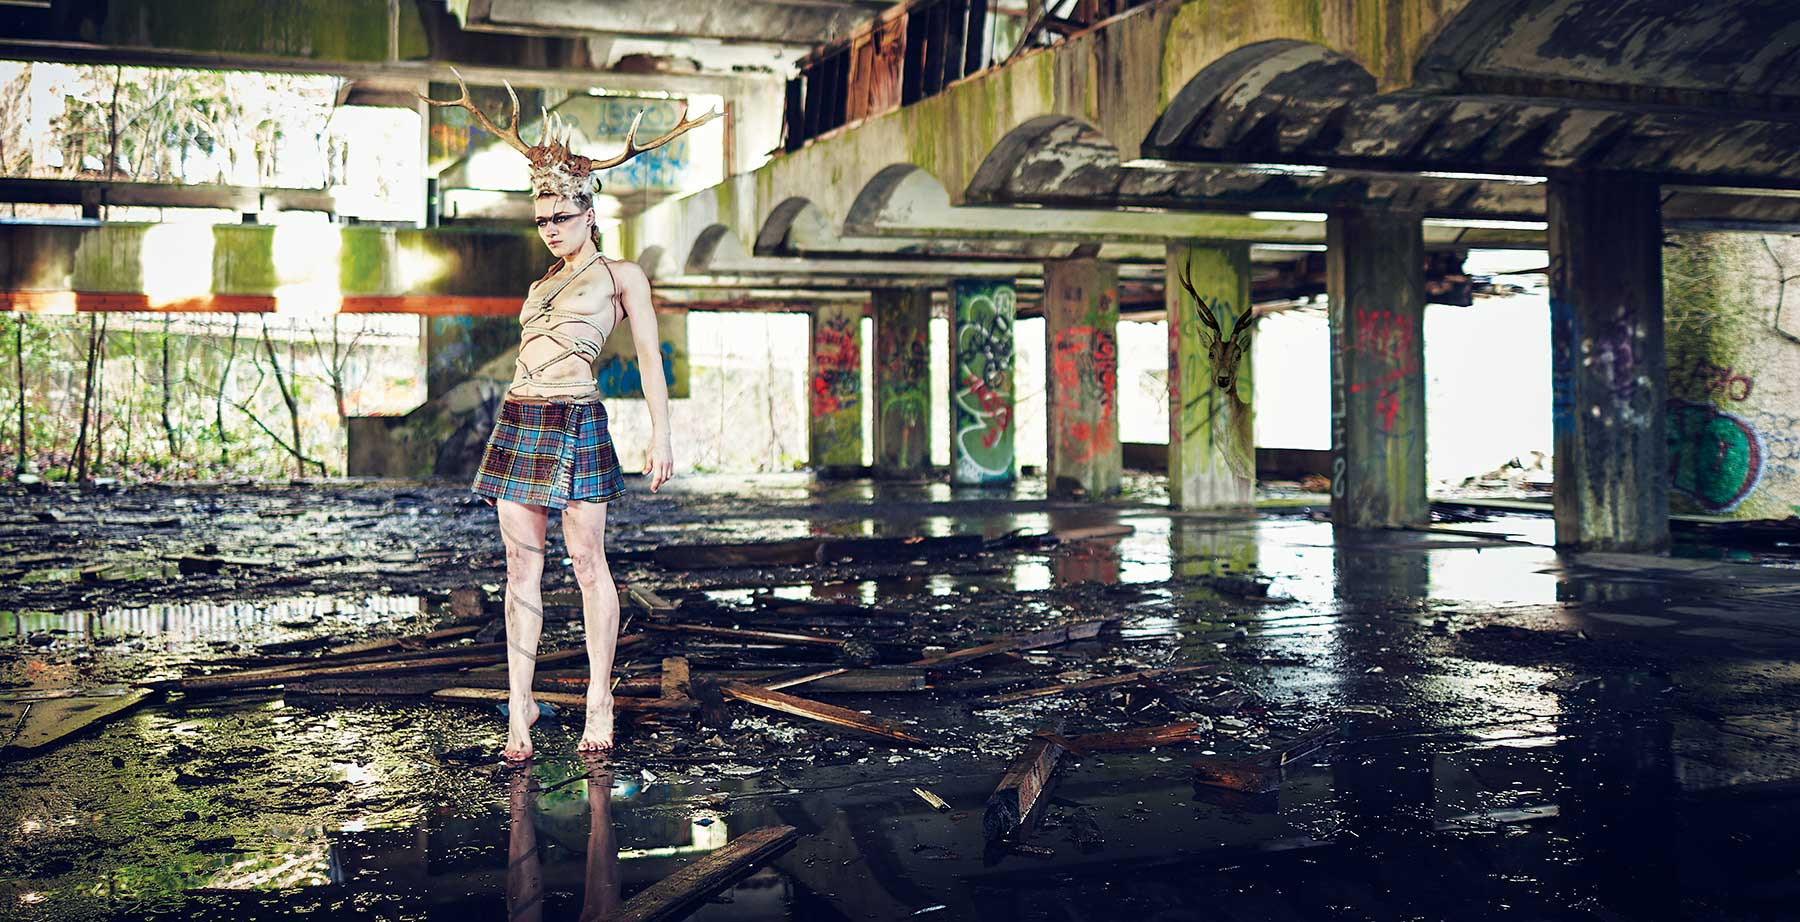 warrior sister in an abandoned building wearing only a kilt and stag antlers on her head